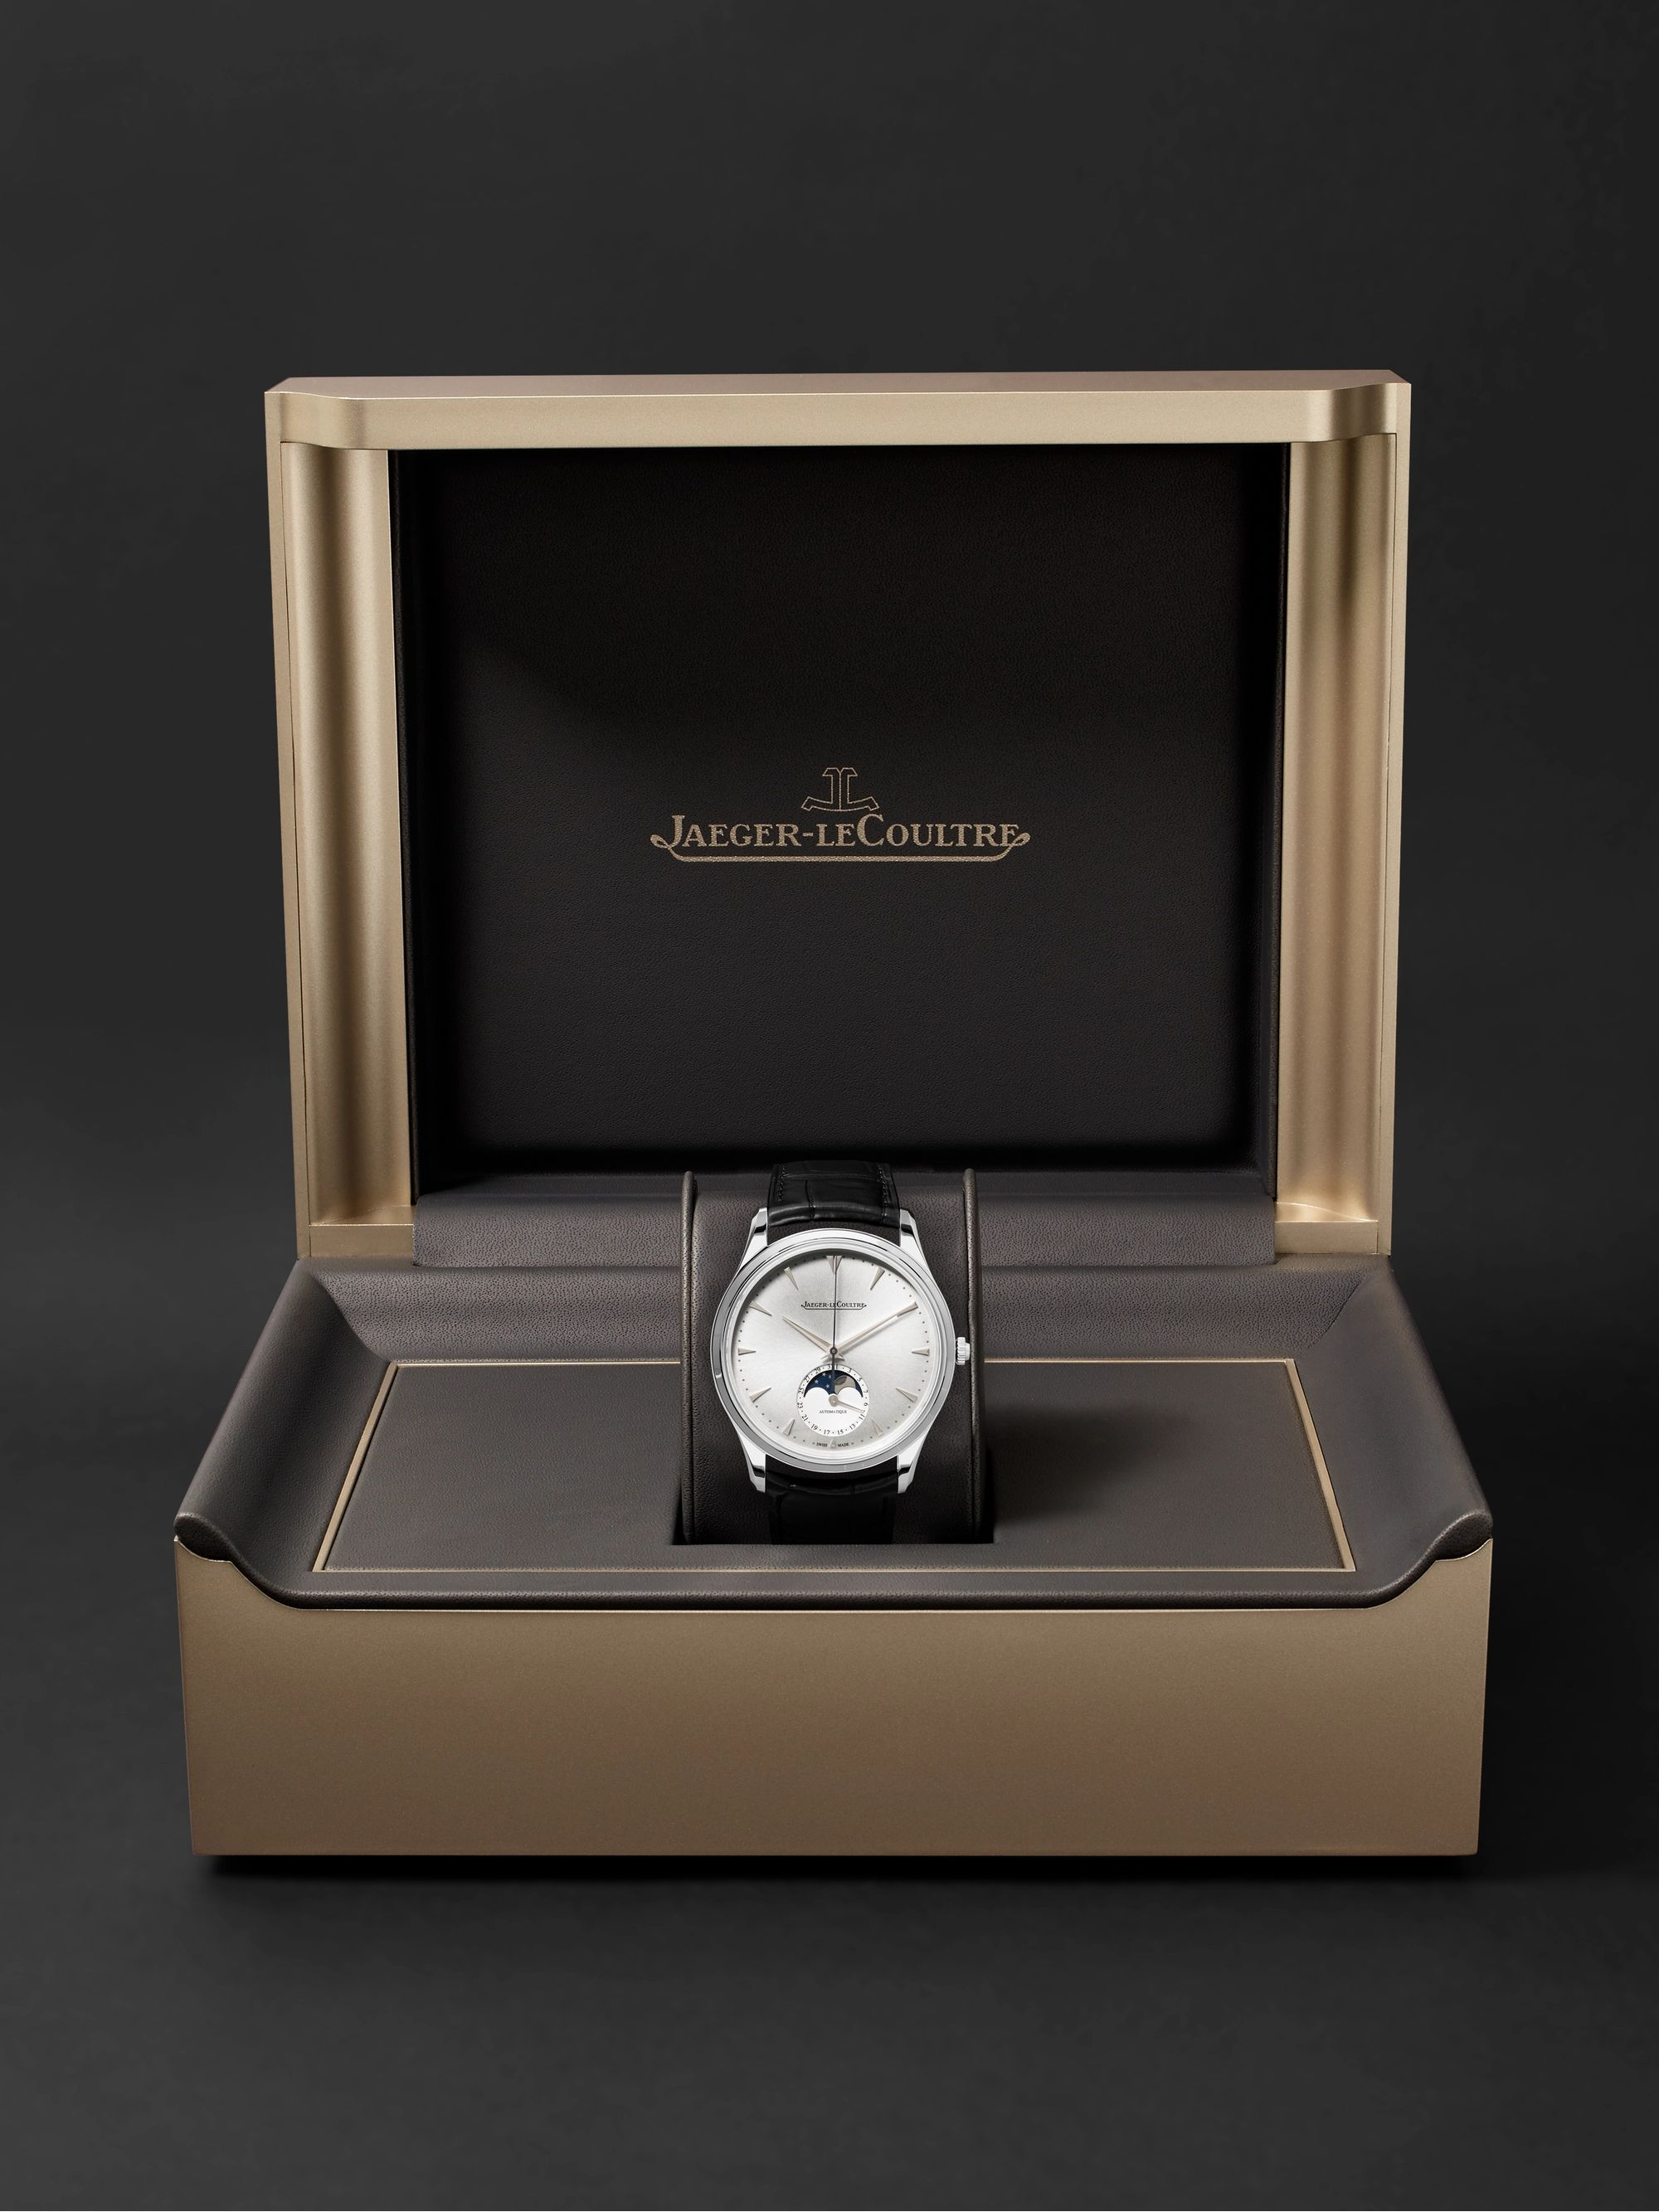 JAEGER-LECOULTRE Master Ultra Thin Moon Automatic 39mm Stainless Steel and Alligator Watch, Ref. No. JLQ1368420